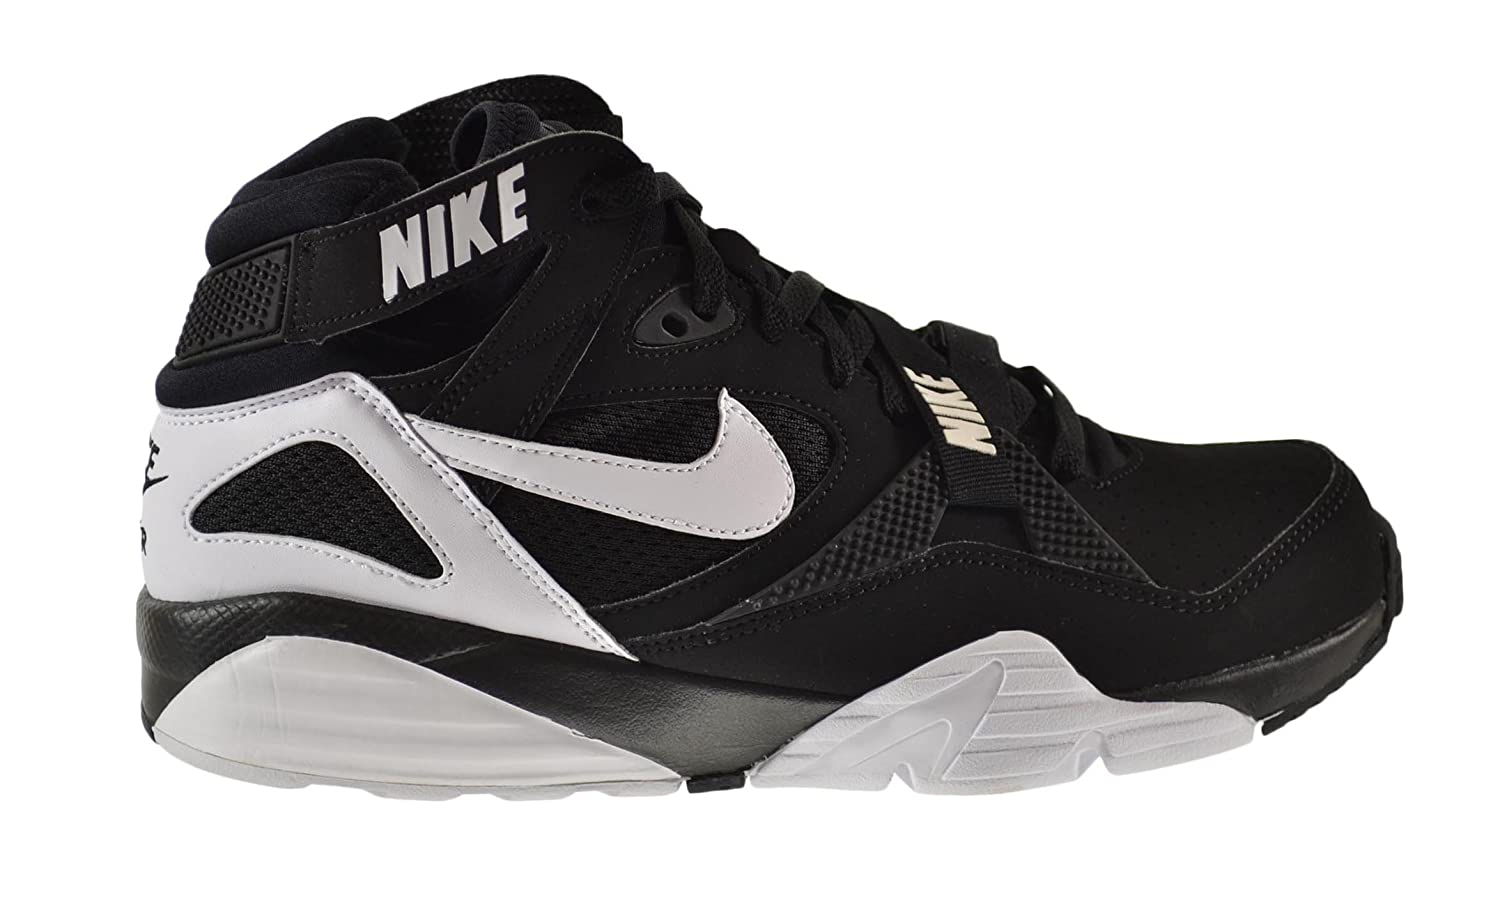 low priced 60dc5 e55d1 nike air trainer max 91 amazon